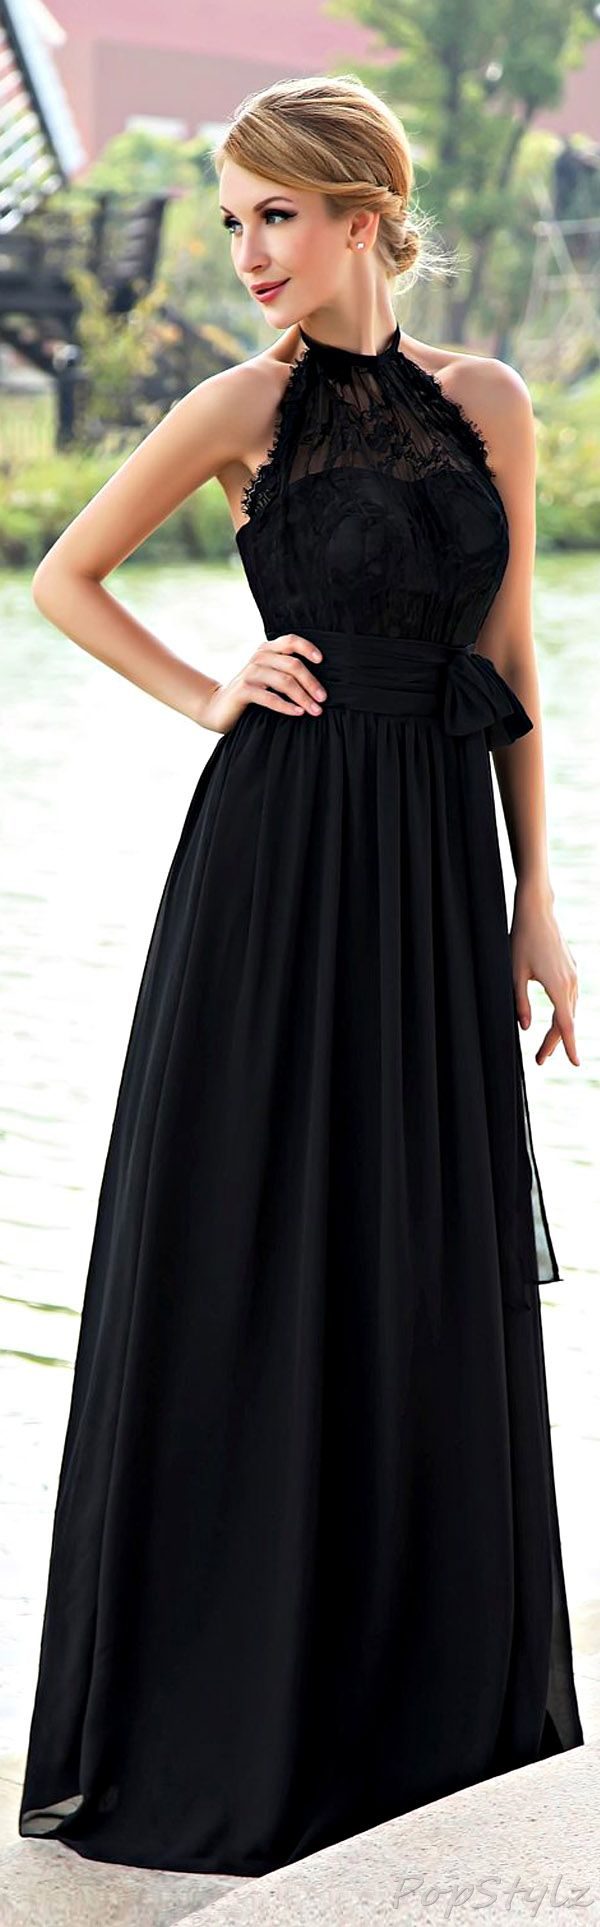 Honeystore low back chiffon gown in black would like it better as a